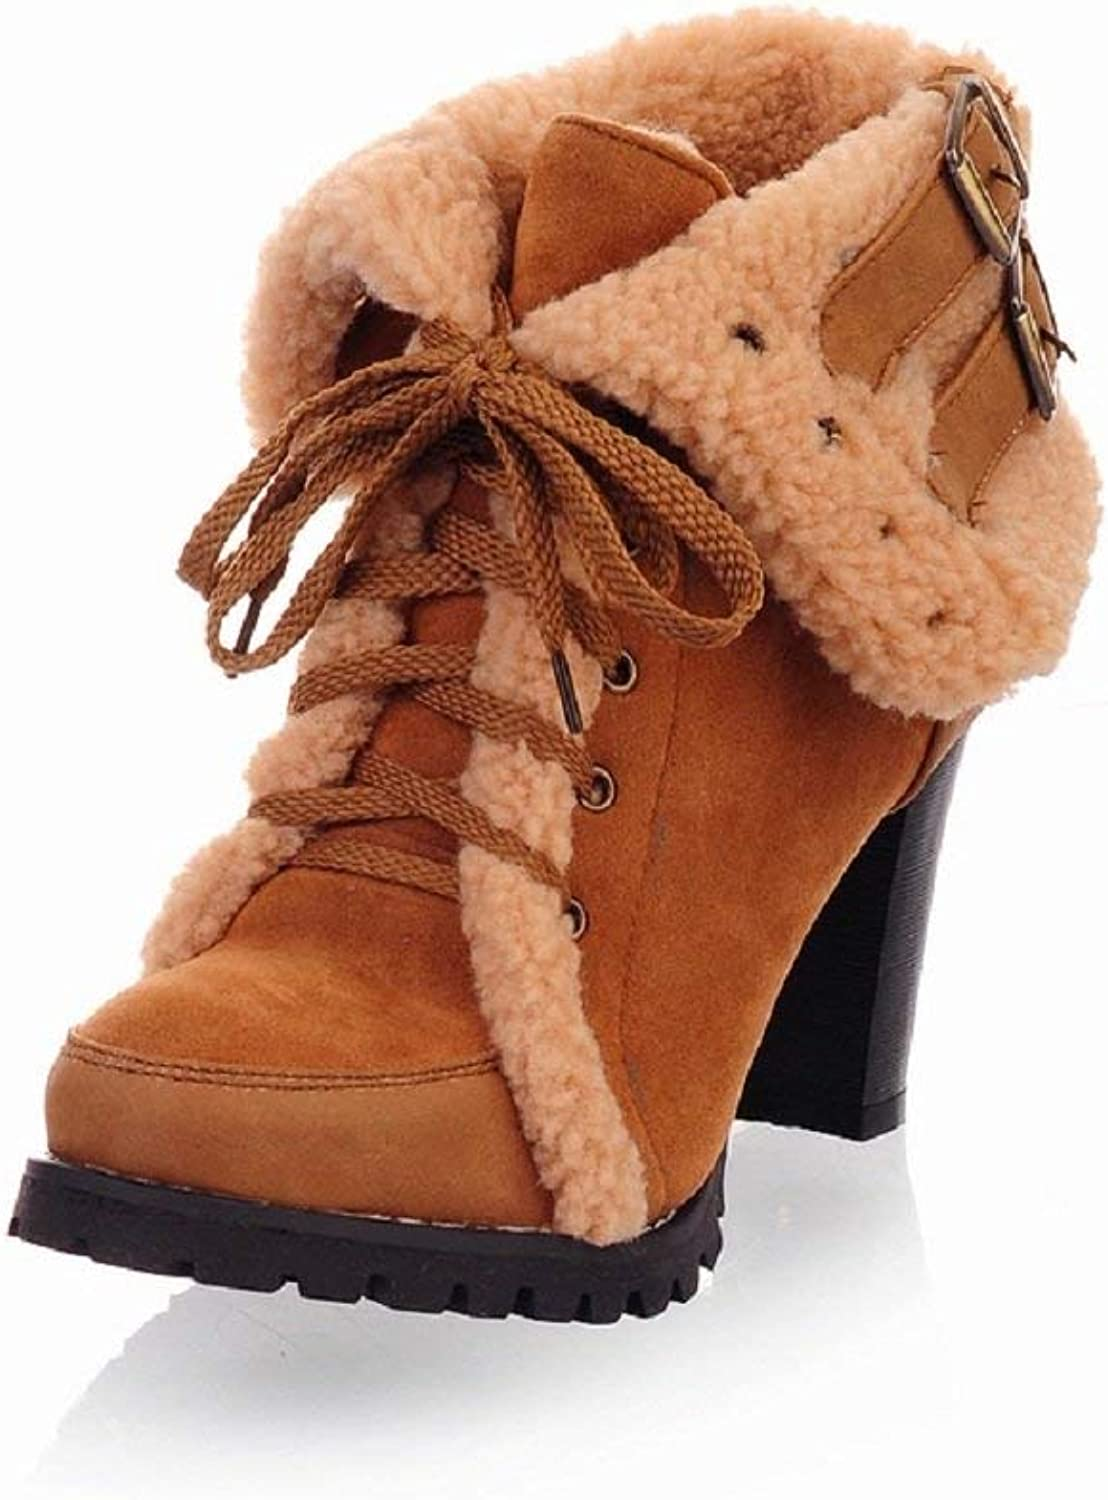 Gcanwea Winter Fashion Womens High Heel Snow Boots Black Non-Slip Breathable Lace Up Warm Rubber Sole Round Toe Comfortable Yellow 4.5 M US Snow Boots